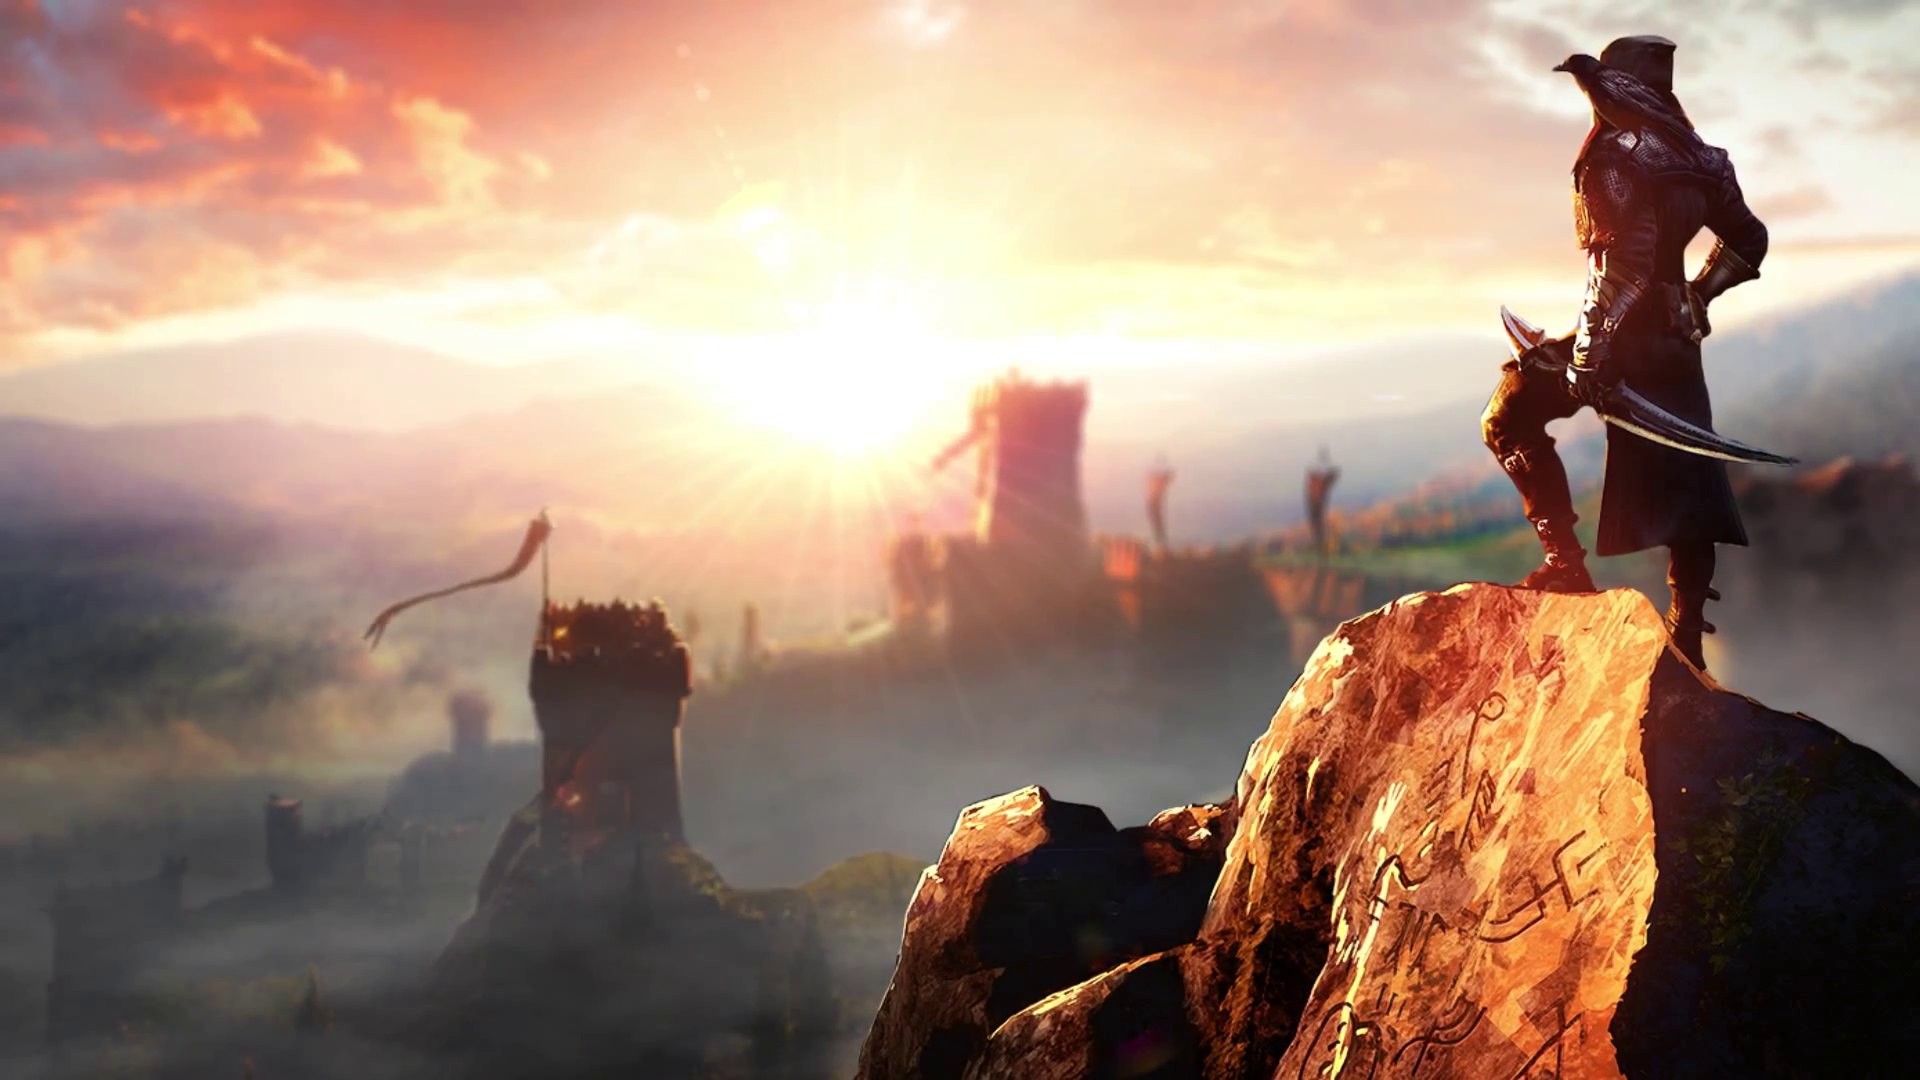 Free Download Dragon Age Inquisition The Towers Wallpapers